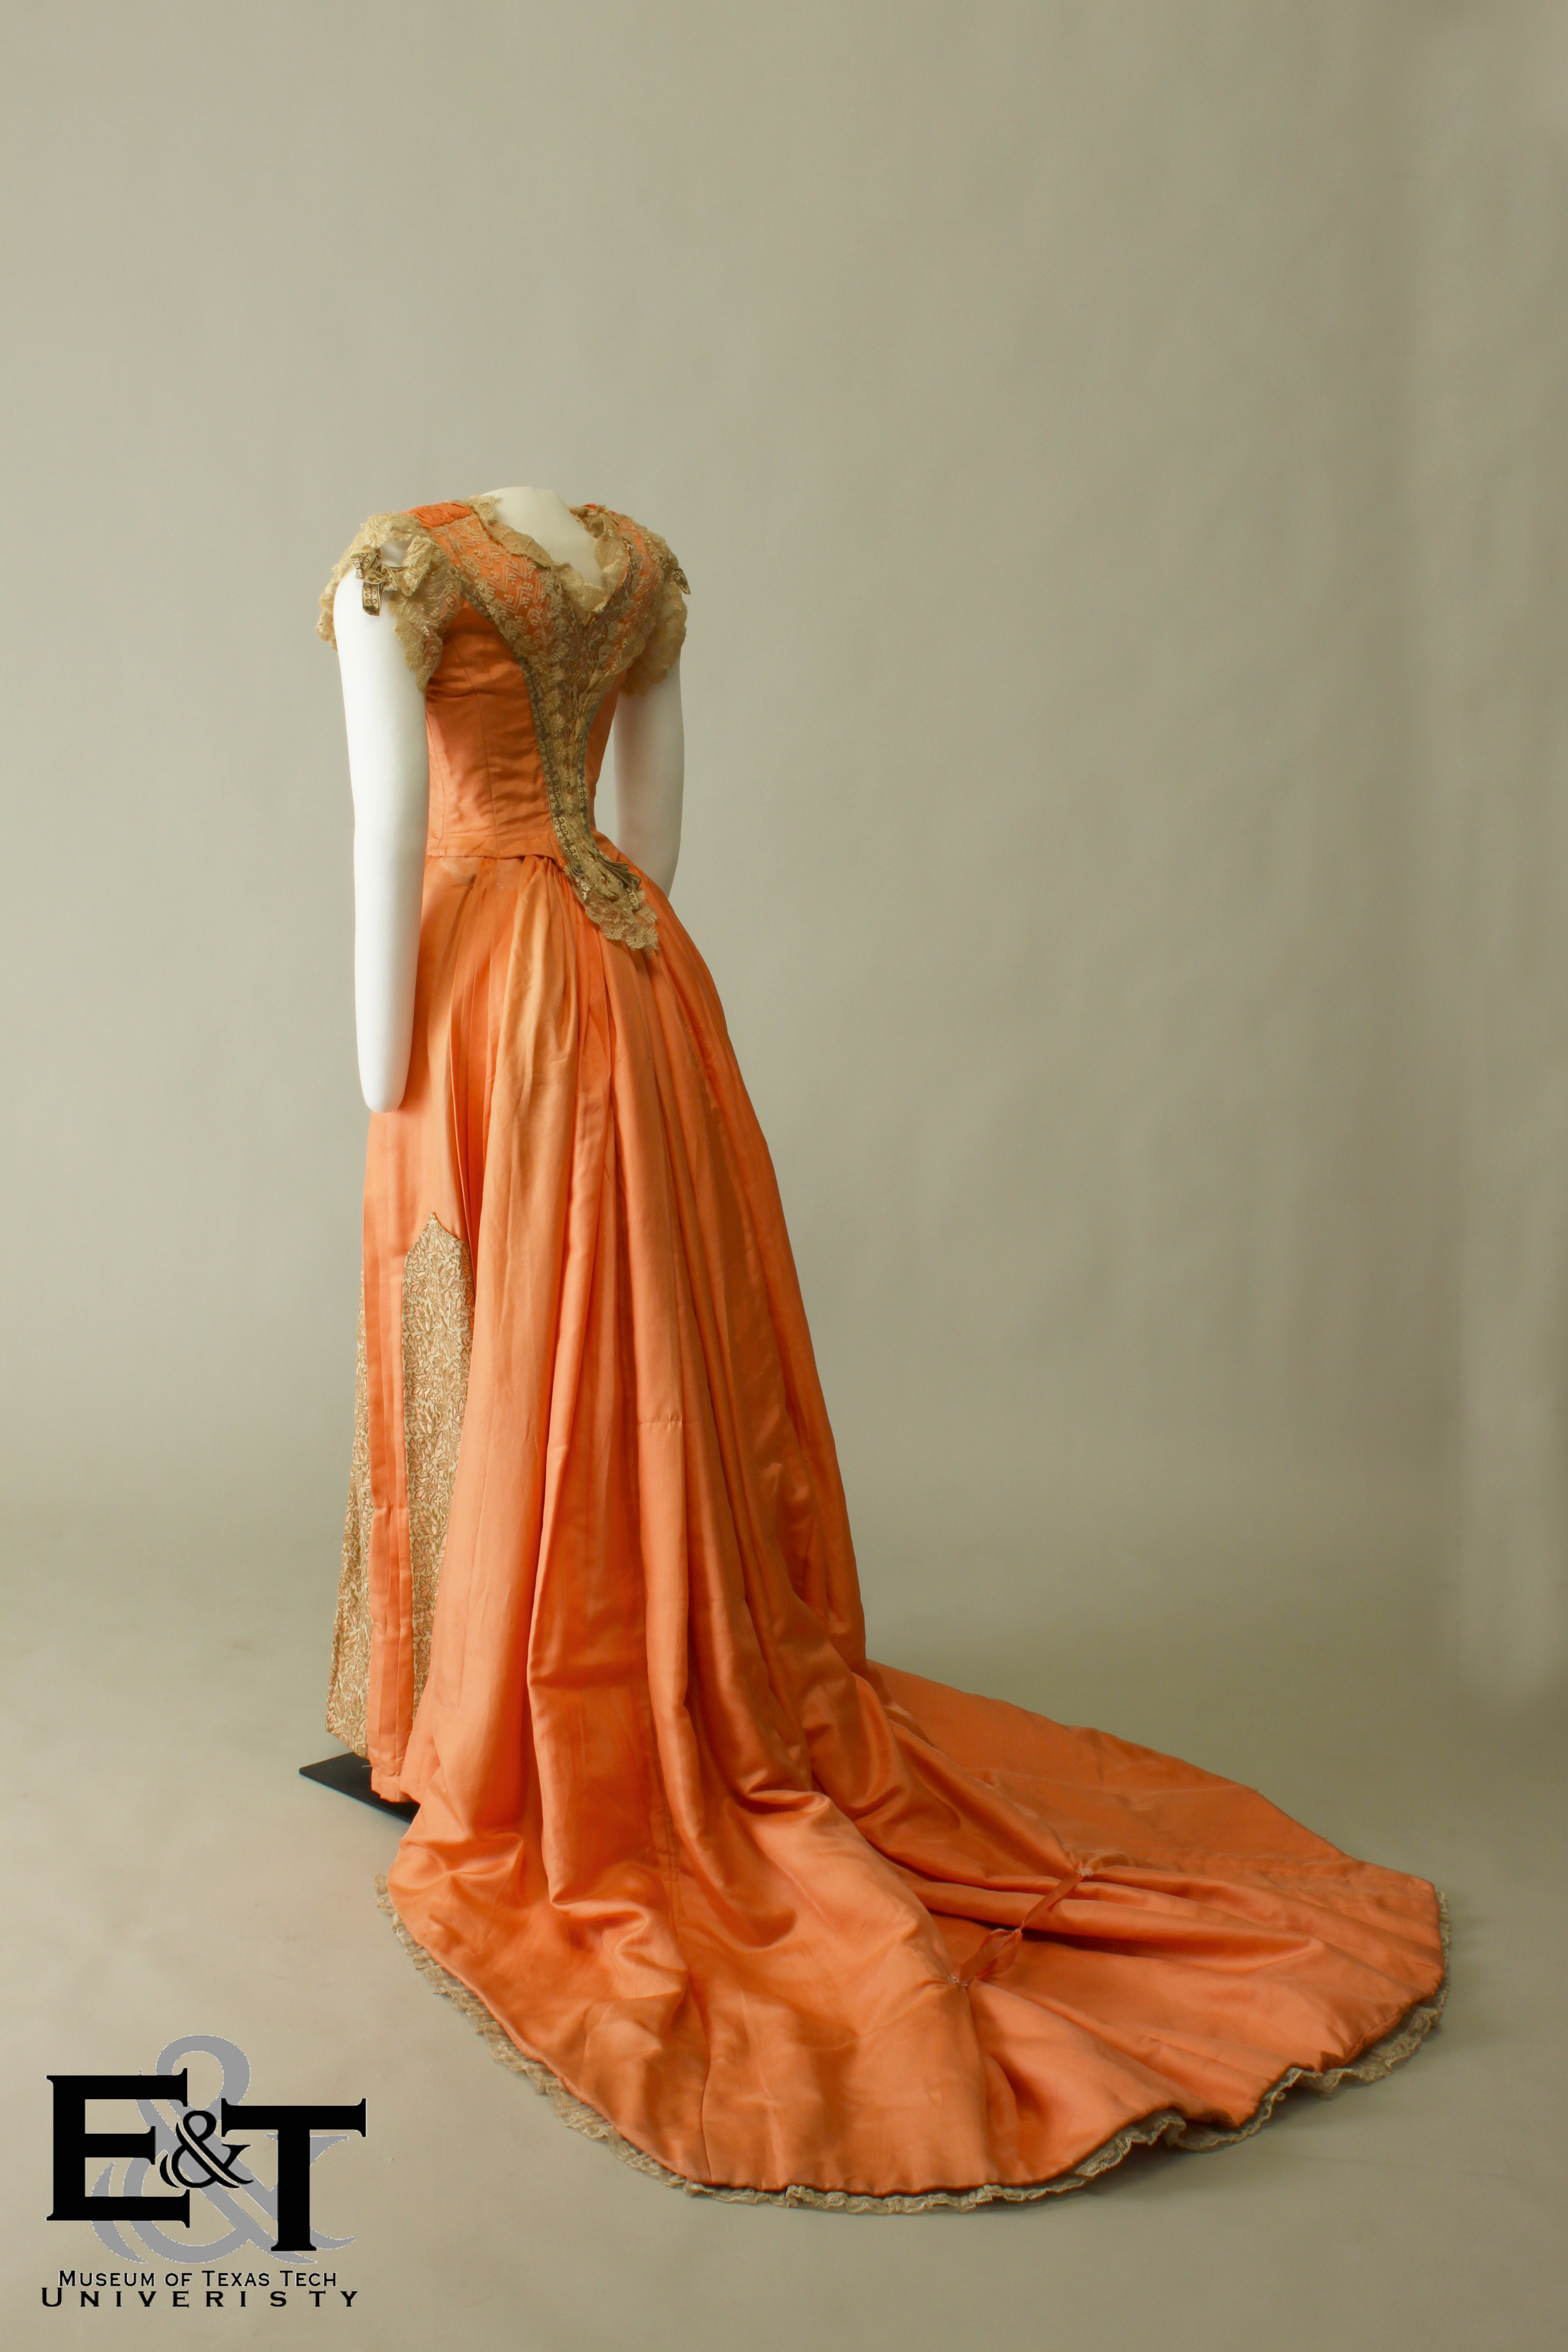 Hattie Napice purchased this gown at the same time as her 1890 wedding dress